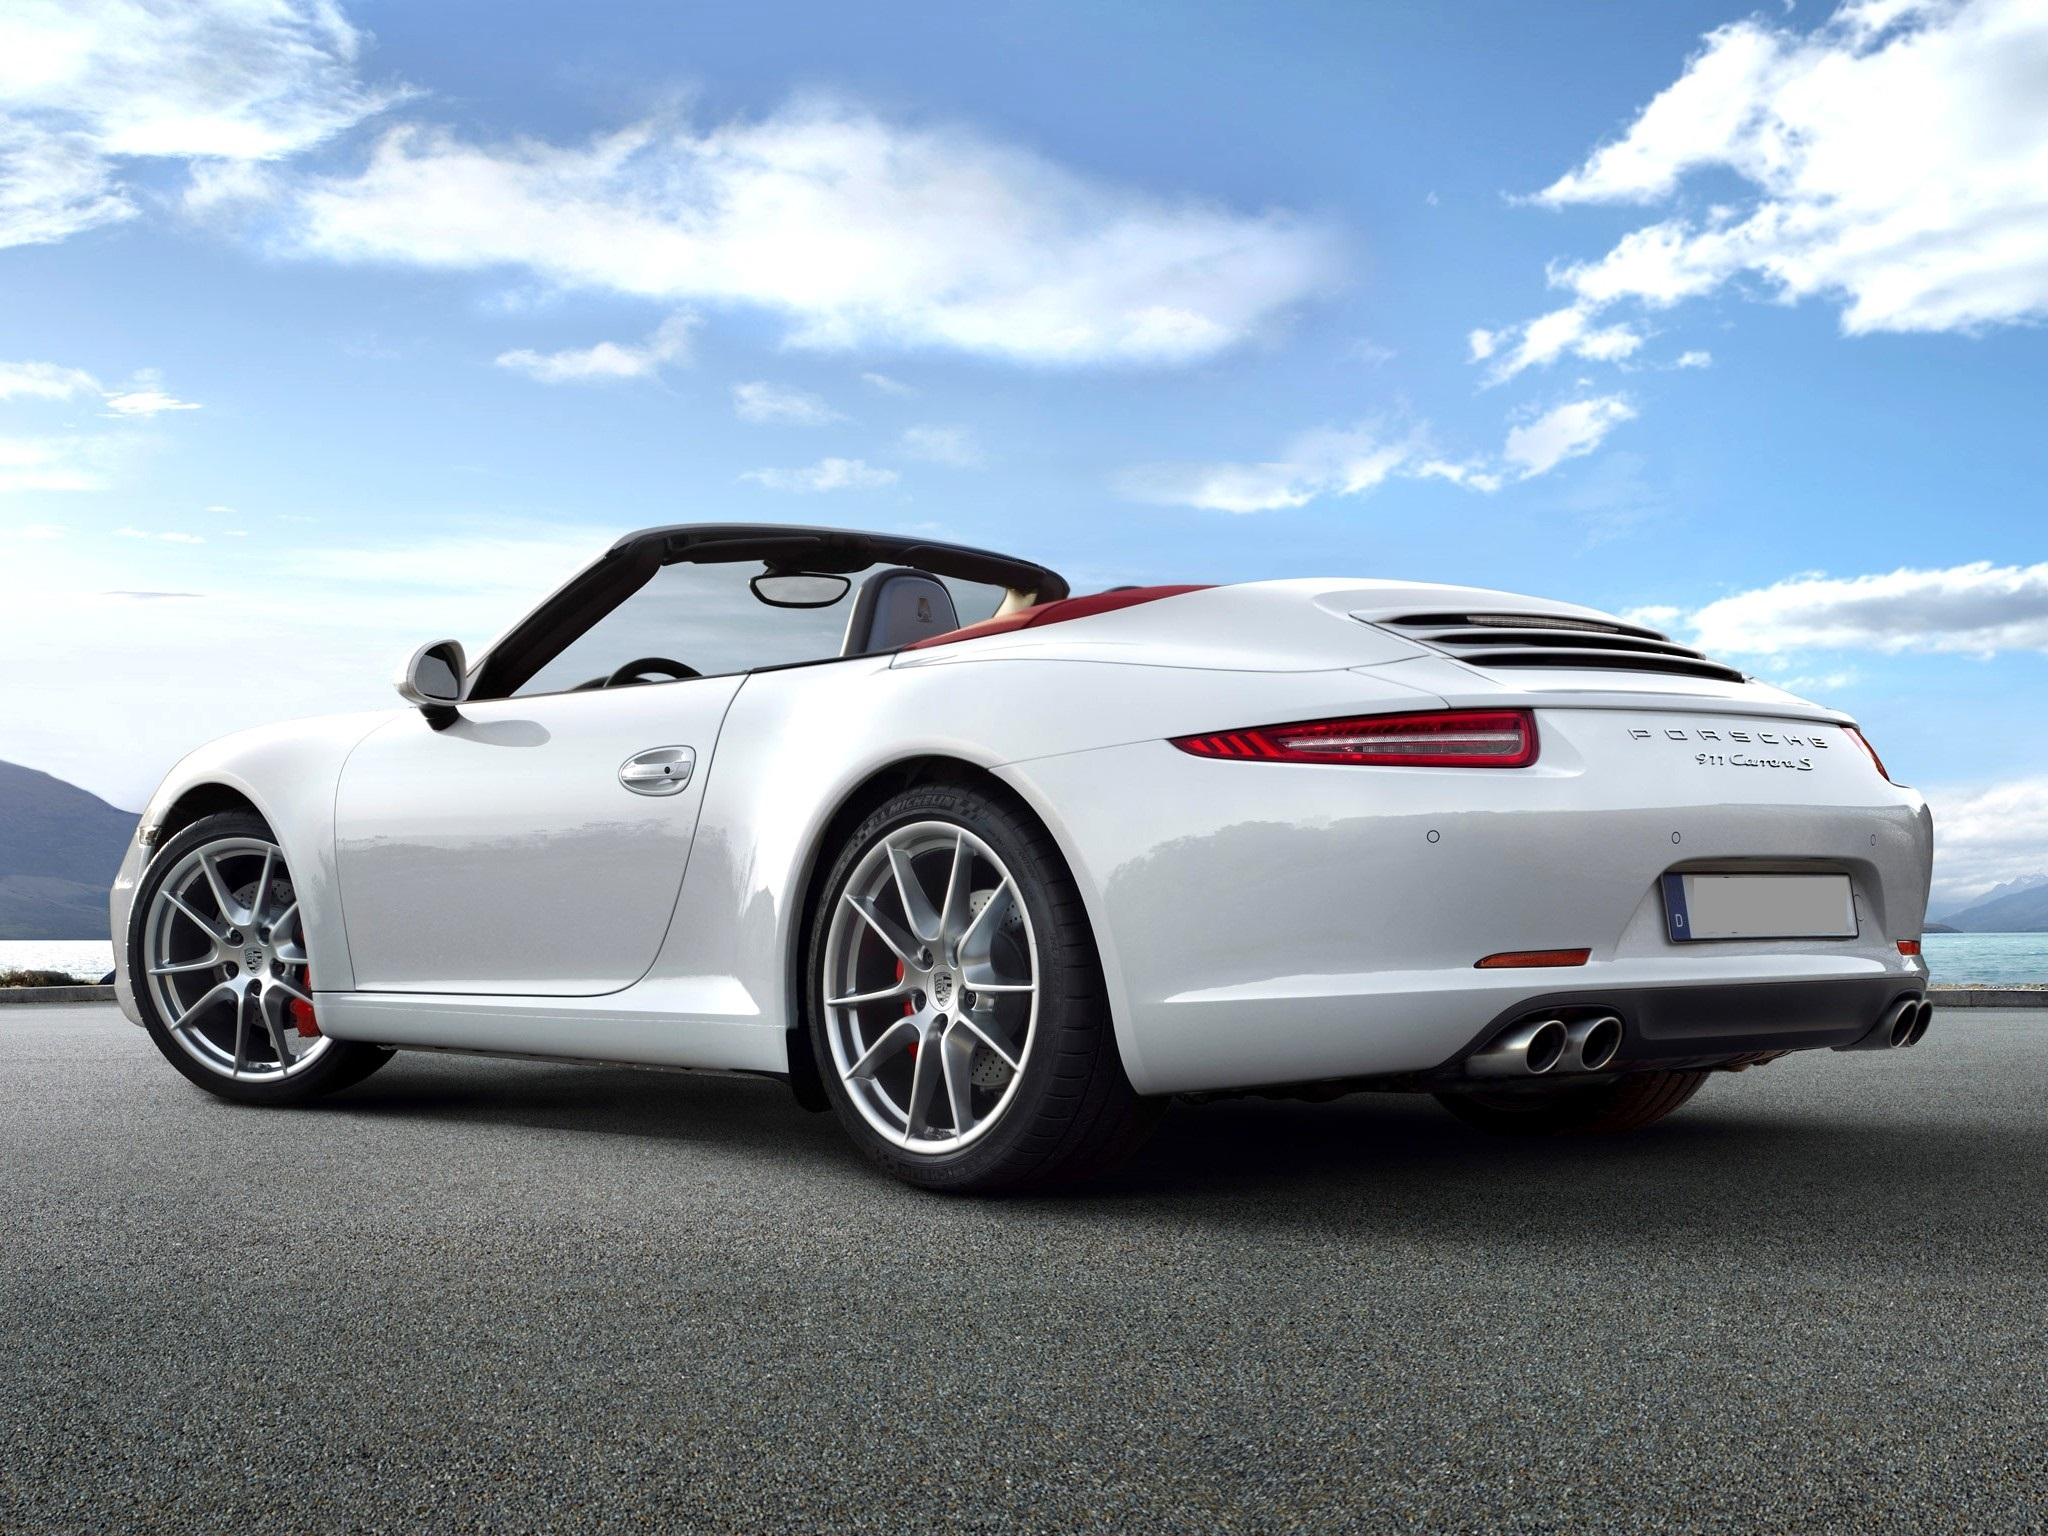 porsche 911 cabriolet - back - luxury car rental houston